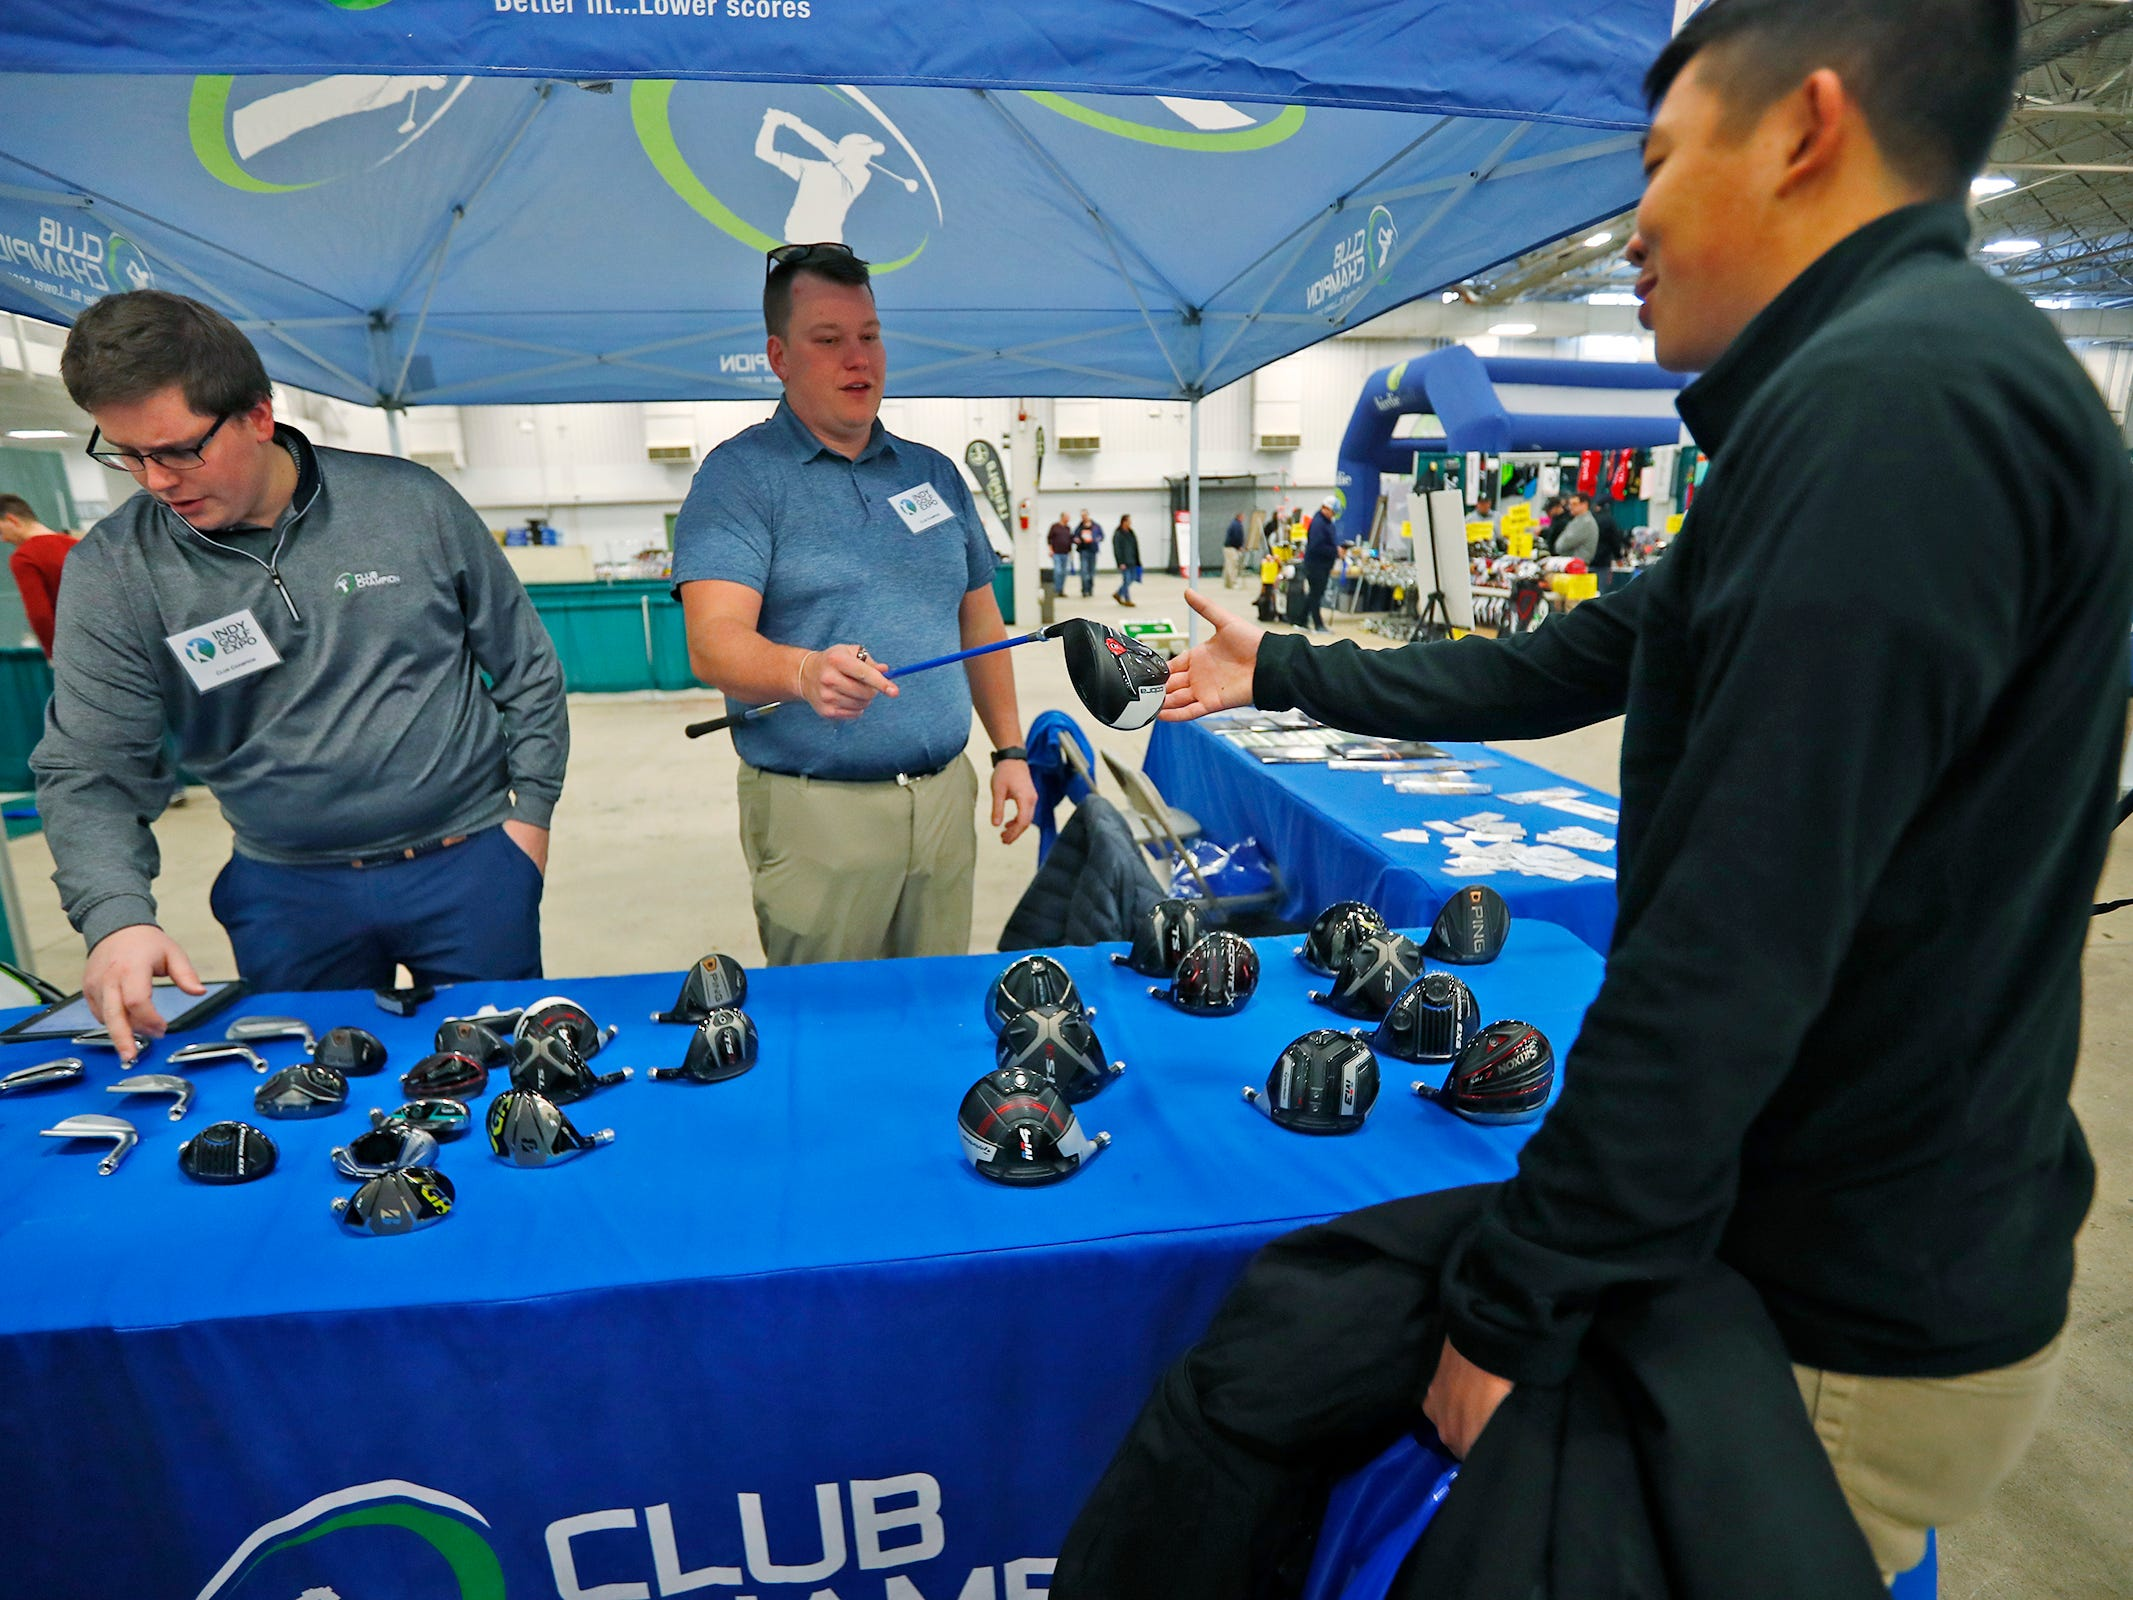 Scott Wong, right, gets a club to try out from store manager Joey Simon, center, at the Club Champion booth during the Indy Golf Expo at the Indiana State Fairgrounds, Sunday, Jan. 20, 2019.  Simon and Grant Gillard, left, are both Master Fitters and Builders at Club Champion.  The Indianapolis company does custom fitting with over 35,000 hittable combinations of clubs.